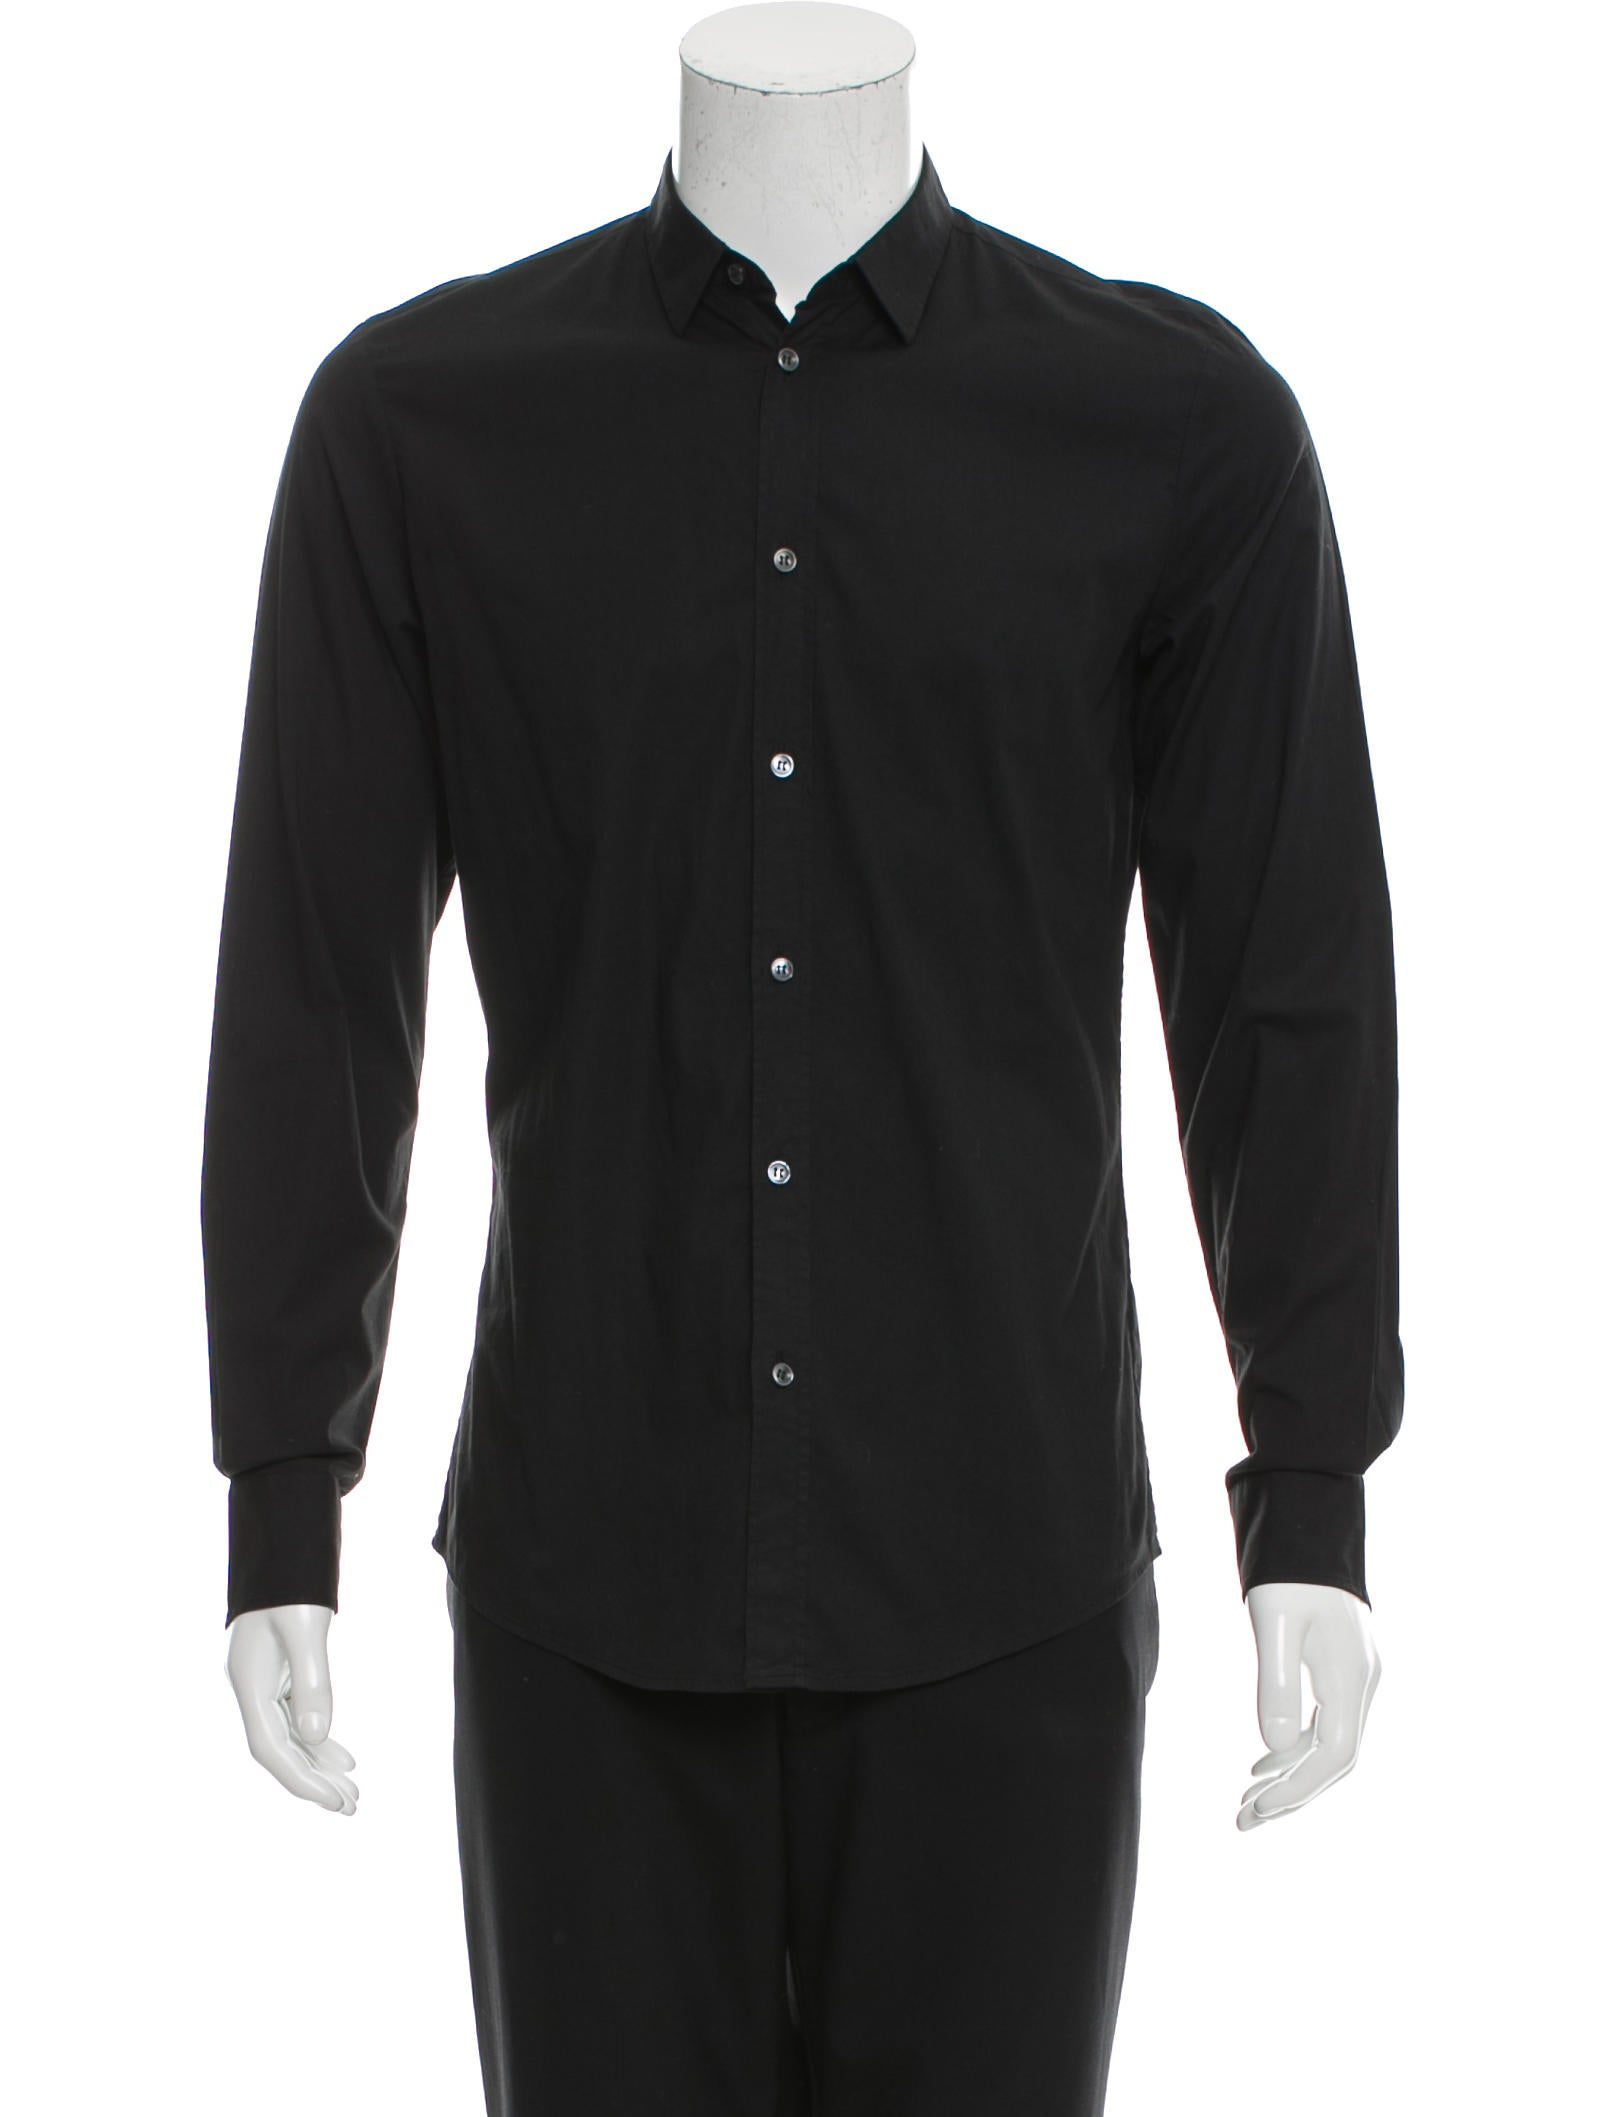 Maison margiela spread collar button up shirt clothing for Men s spread collar shirts